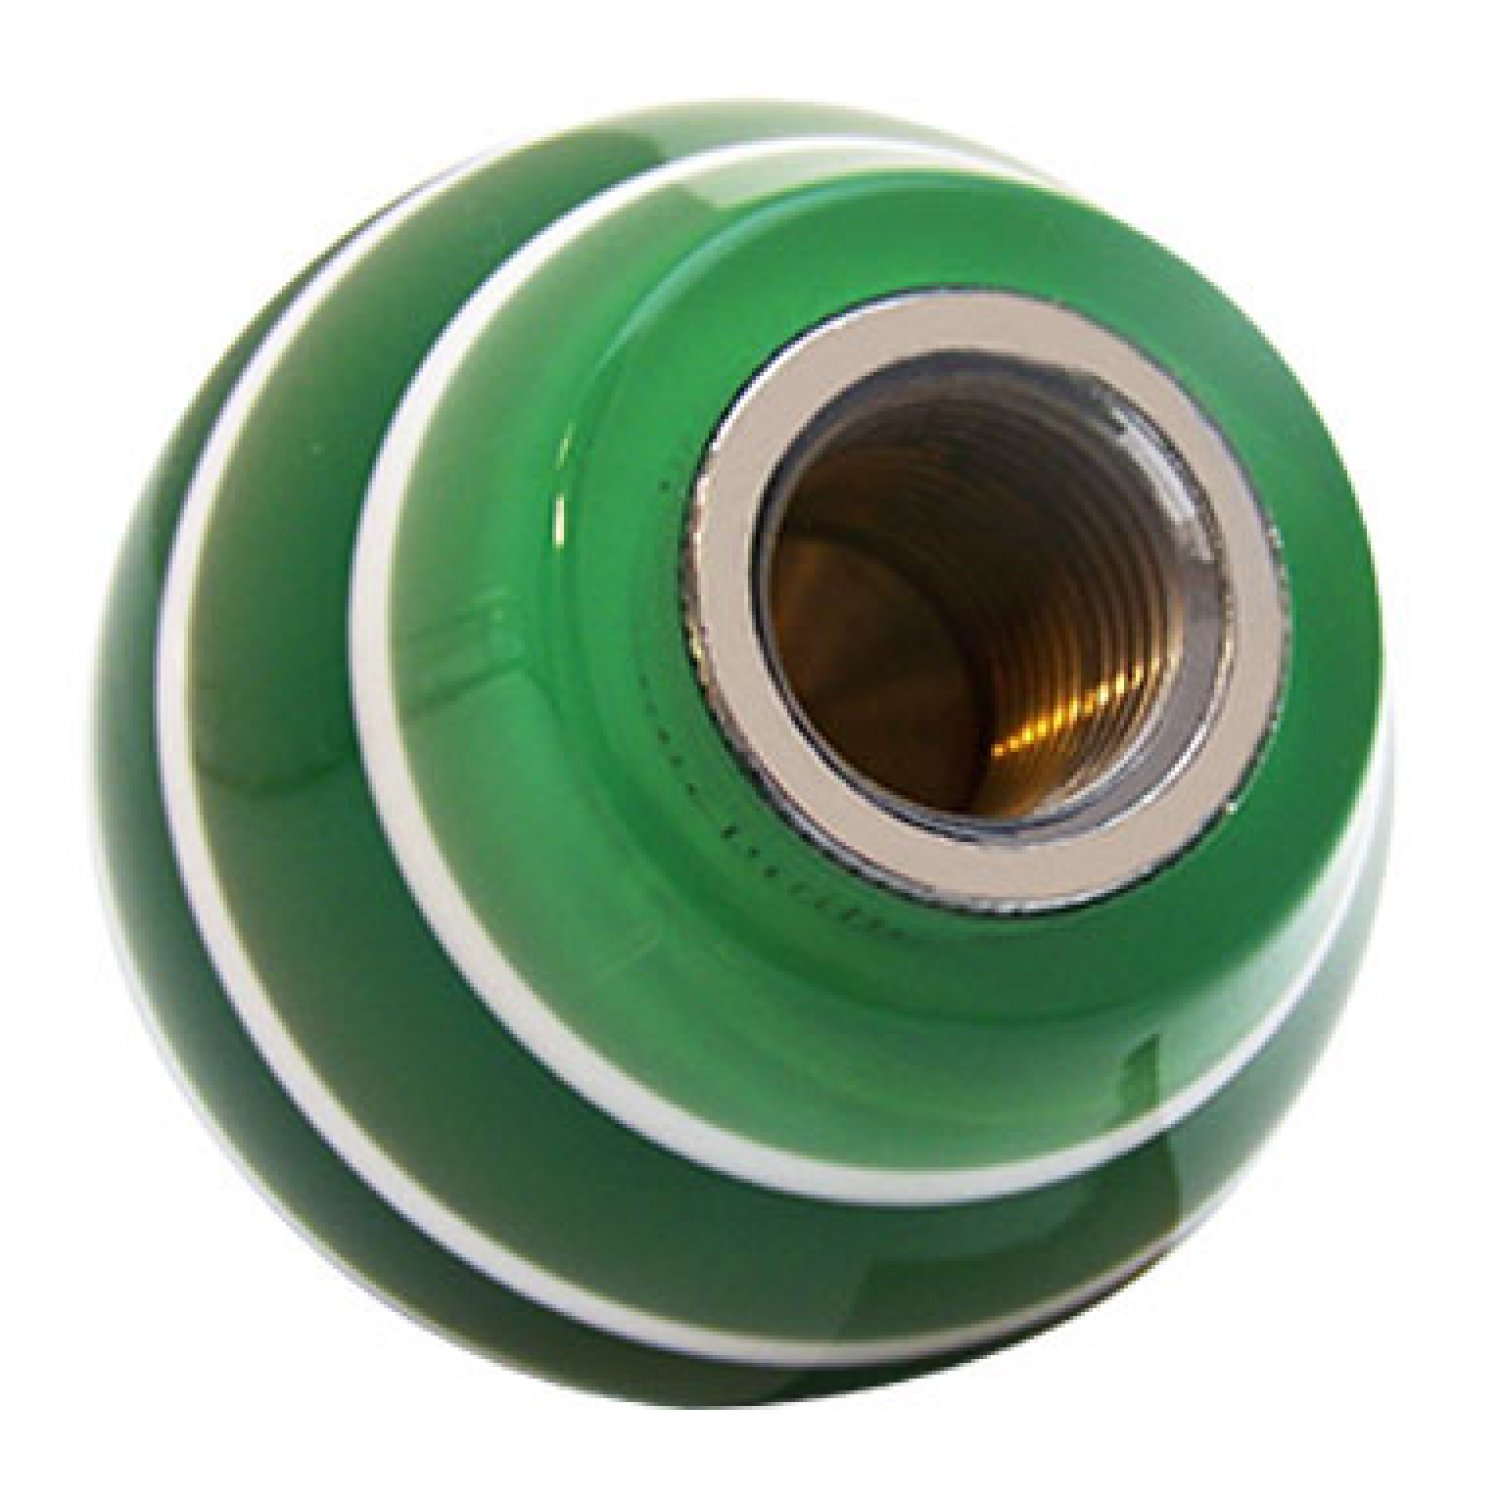 American Shifter 305472 Shift Knob Guinea Bissau Green Stripe with M16 x 1.5 Insert